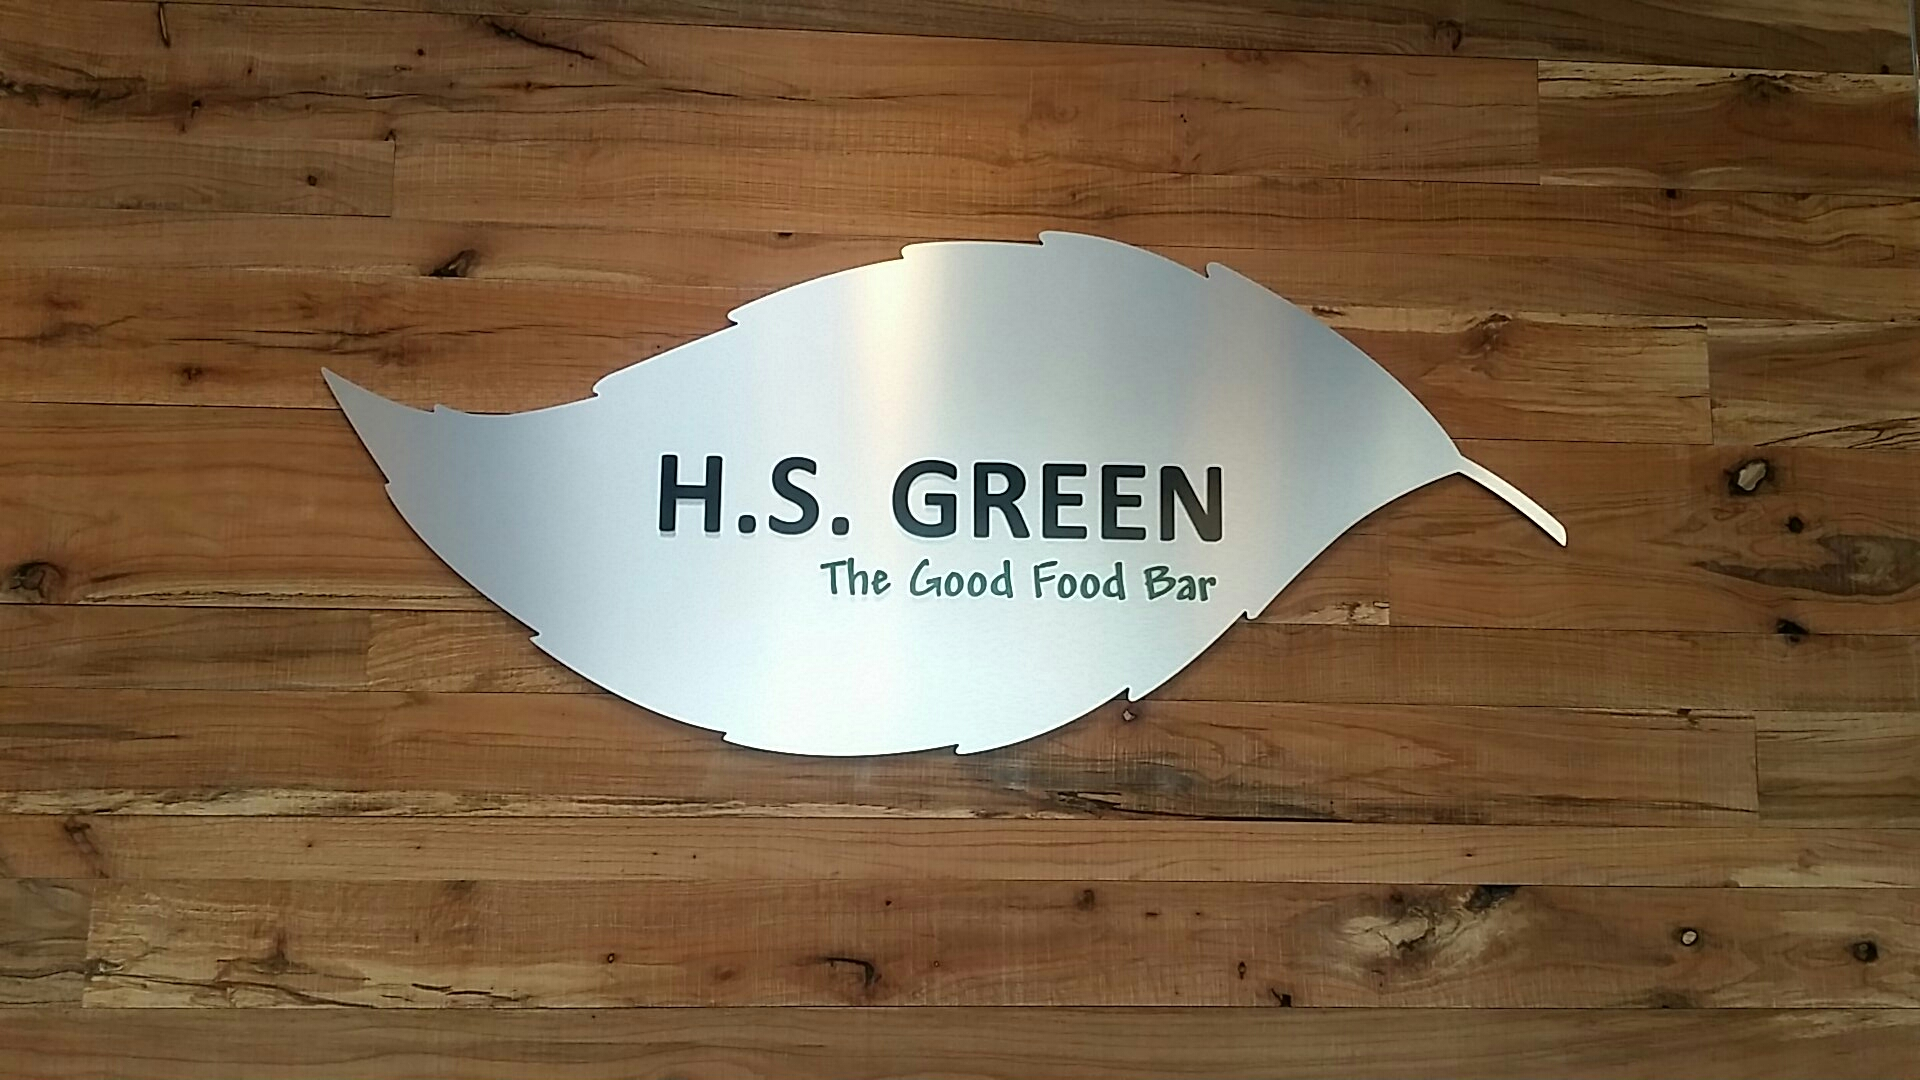 H.S. Green